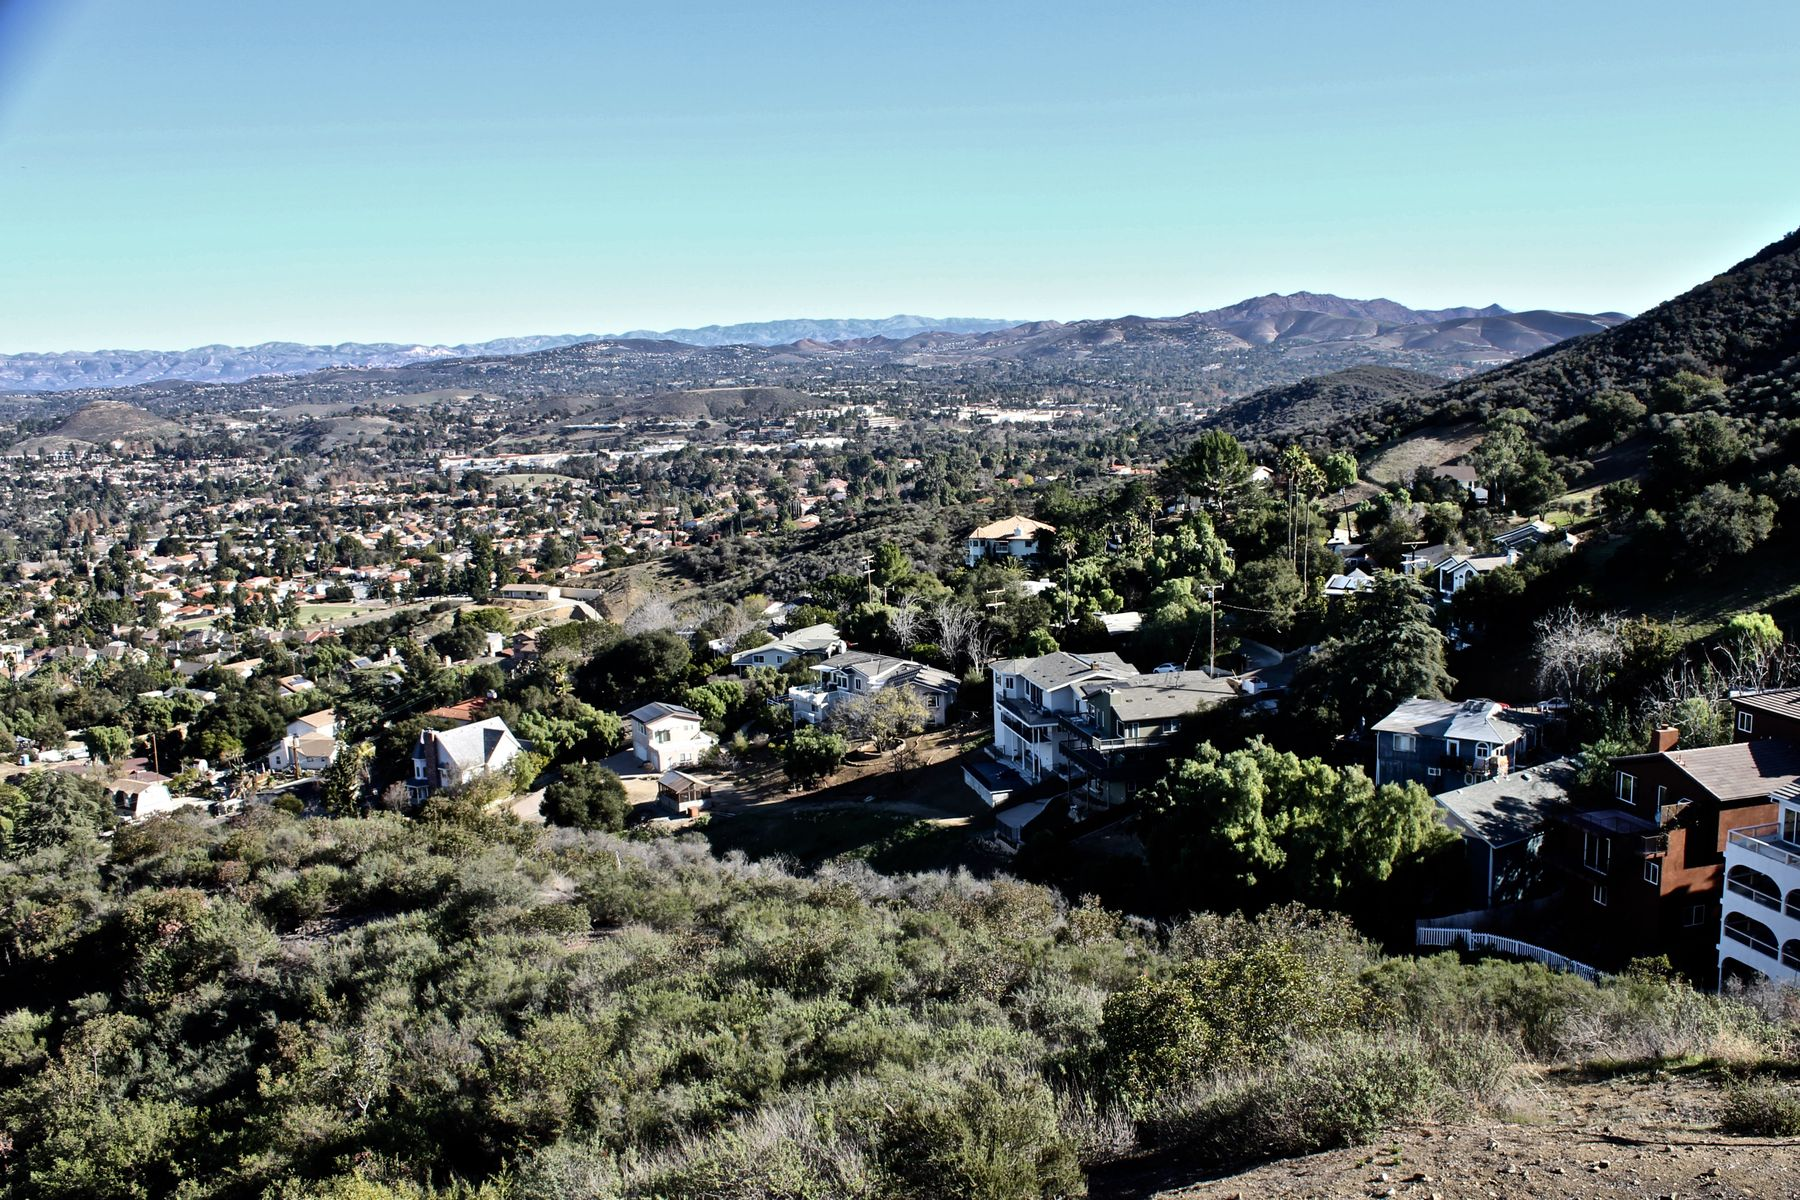 Land for Sale at Build your dream home ~ Endless views 601 Ventu Park Newbury Park, California 91320 United States